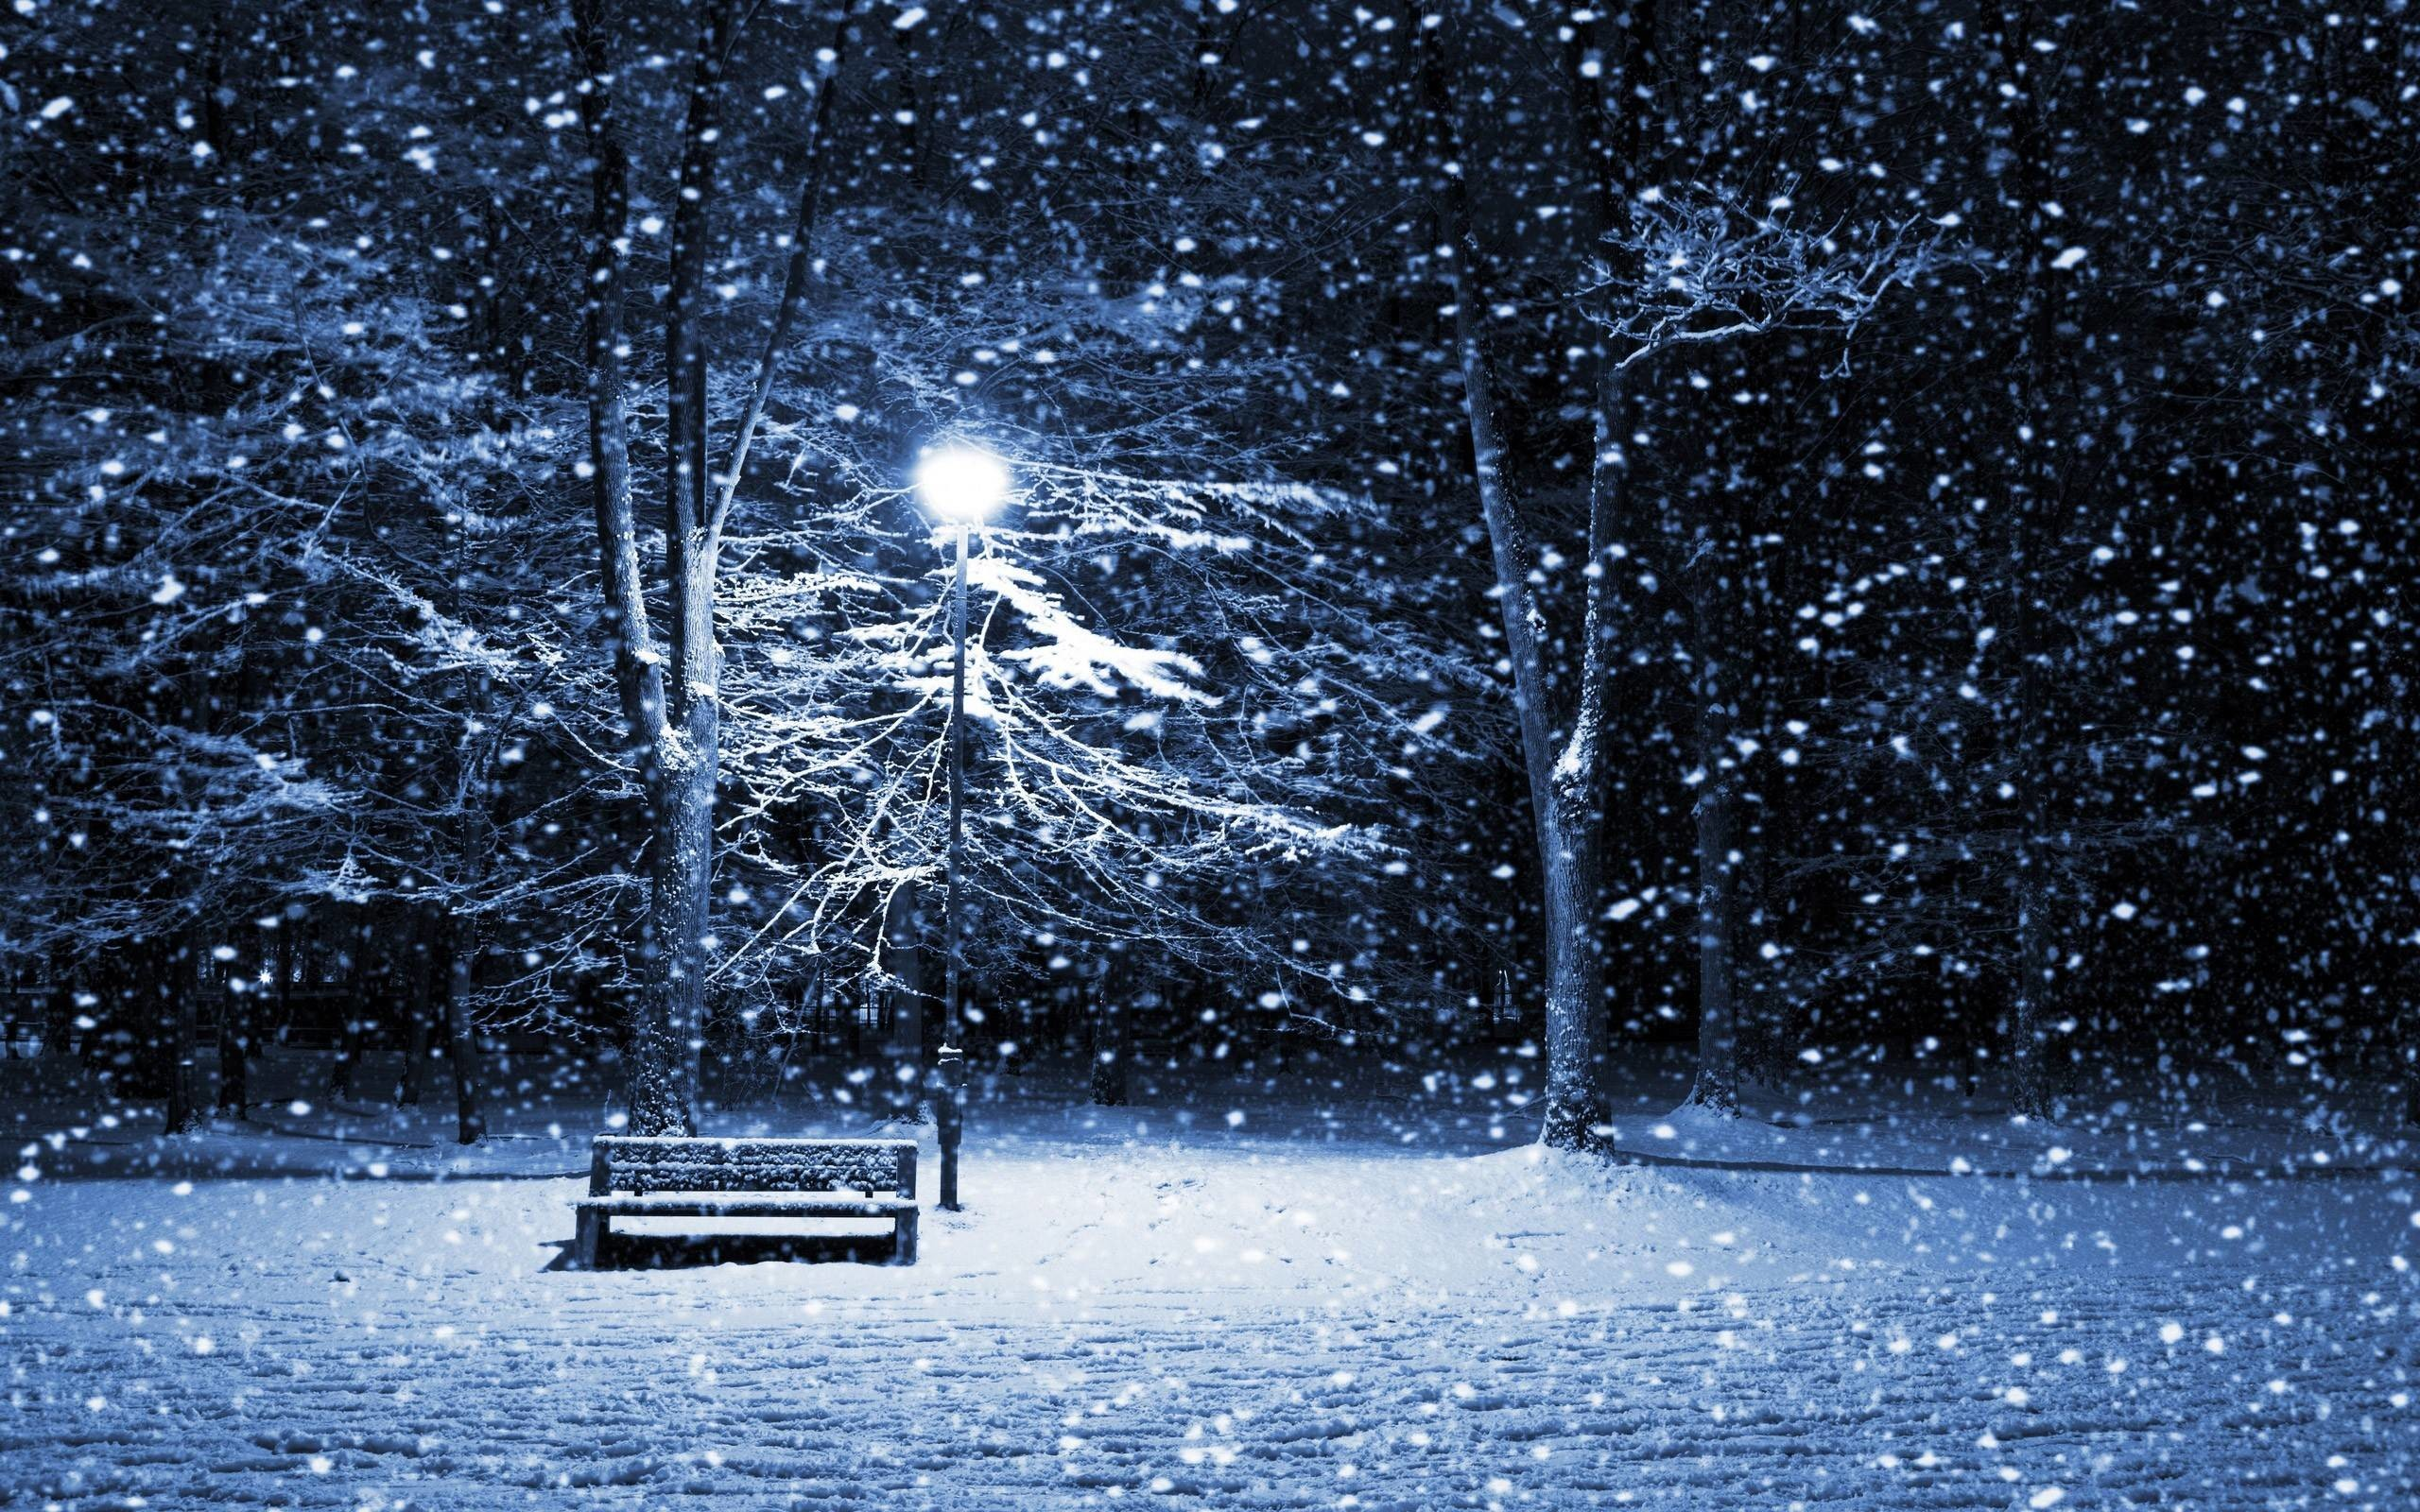 2560x1600 Xmas Stuff For Snowy Christmas Night Wallpaper